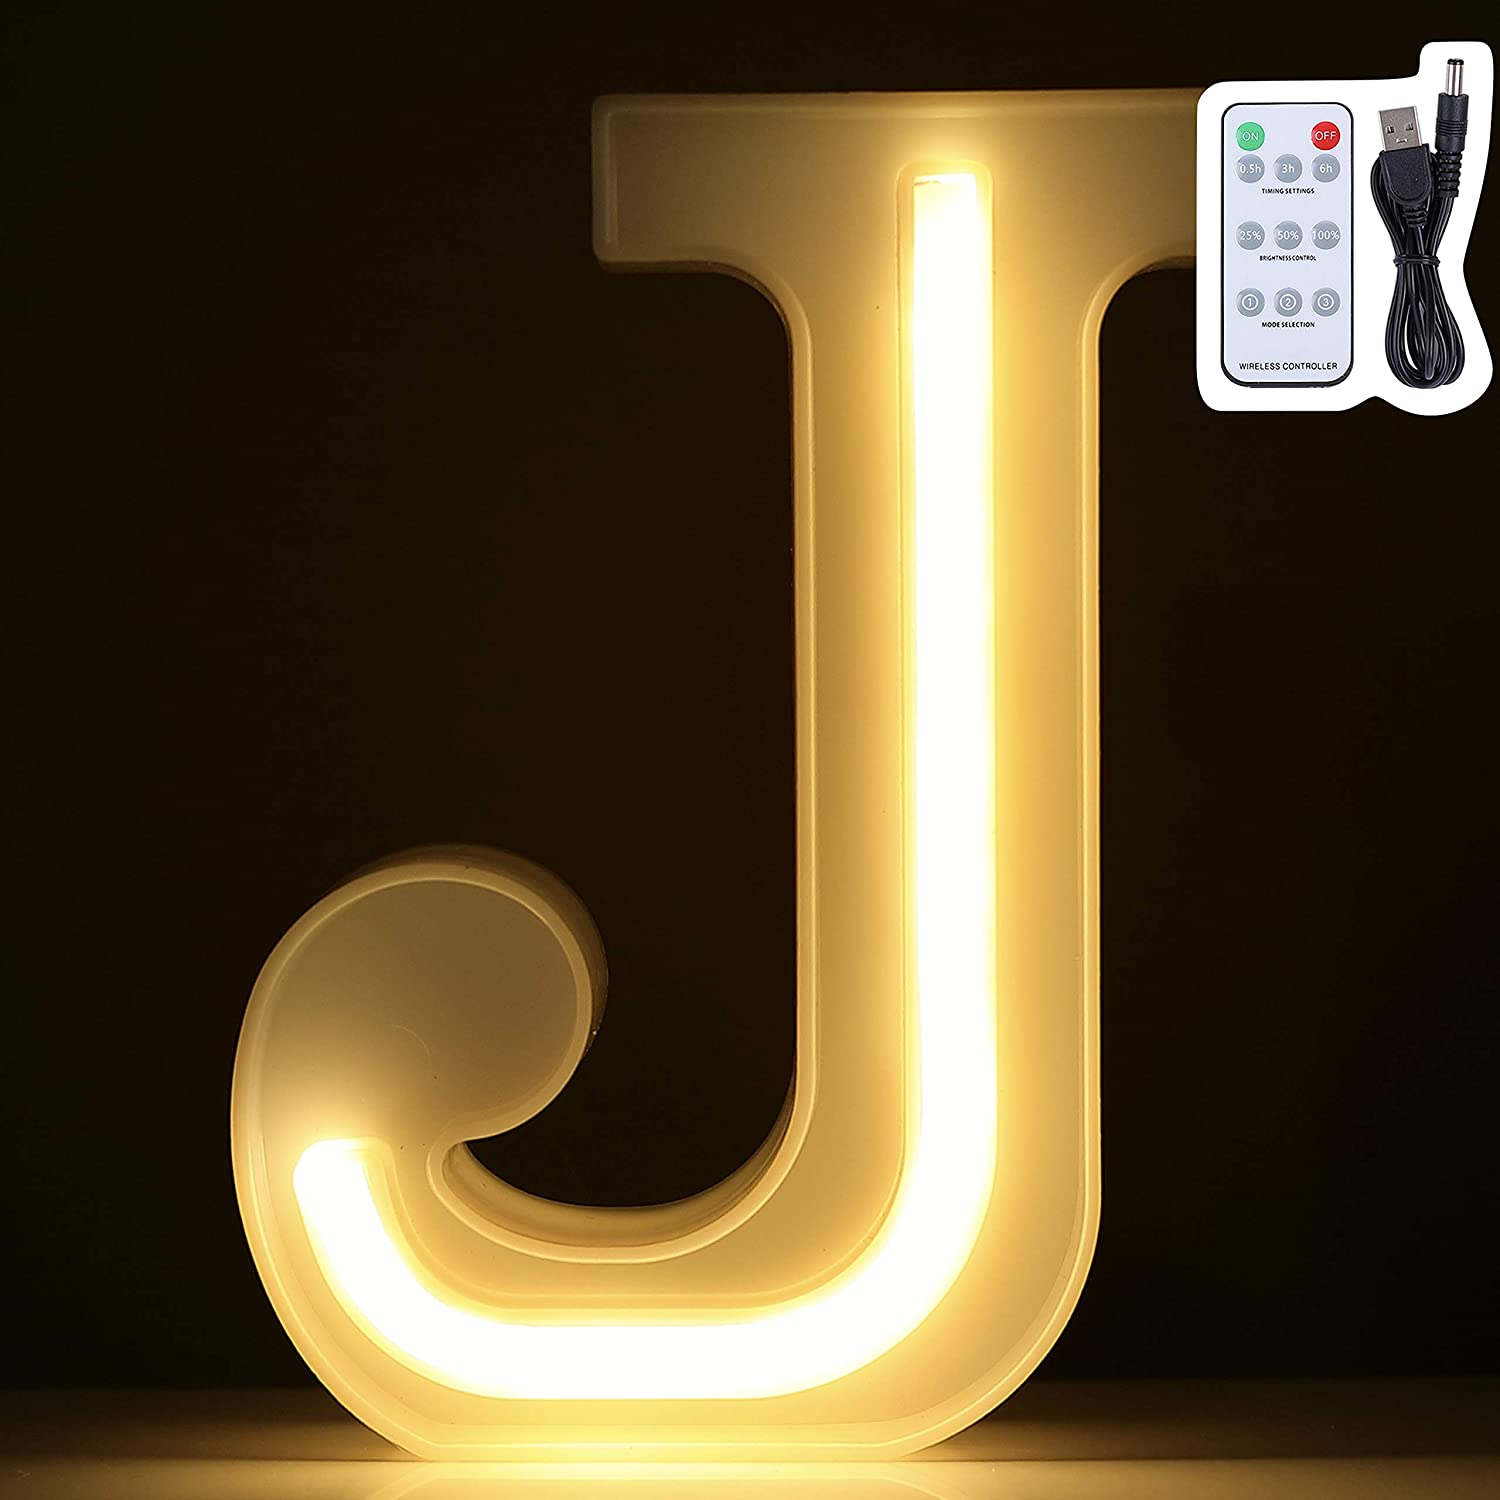 LED Marquee Letter Lights, Warm White Neon Signs Wall Decor, Light Up for Home, Bedroom Decoration on Wedding, Birthday, Christmas, Confession, Multi-Function Remote Control, Battery/USB Powered (J)